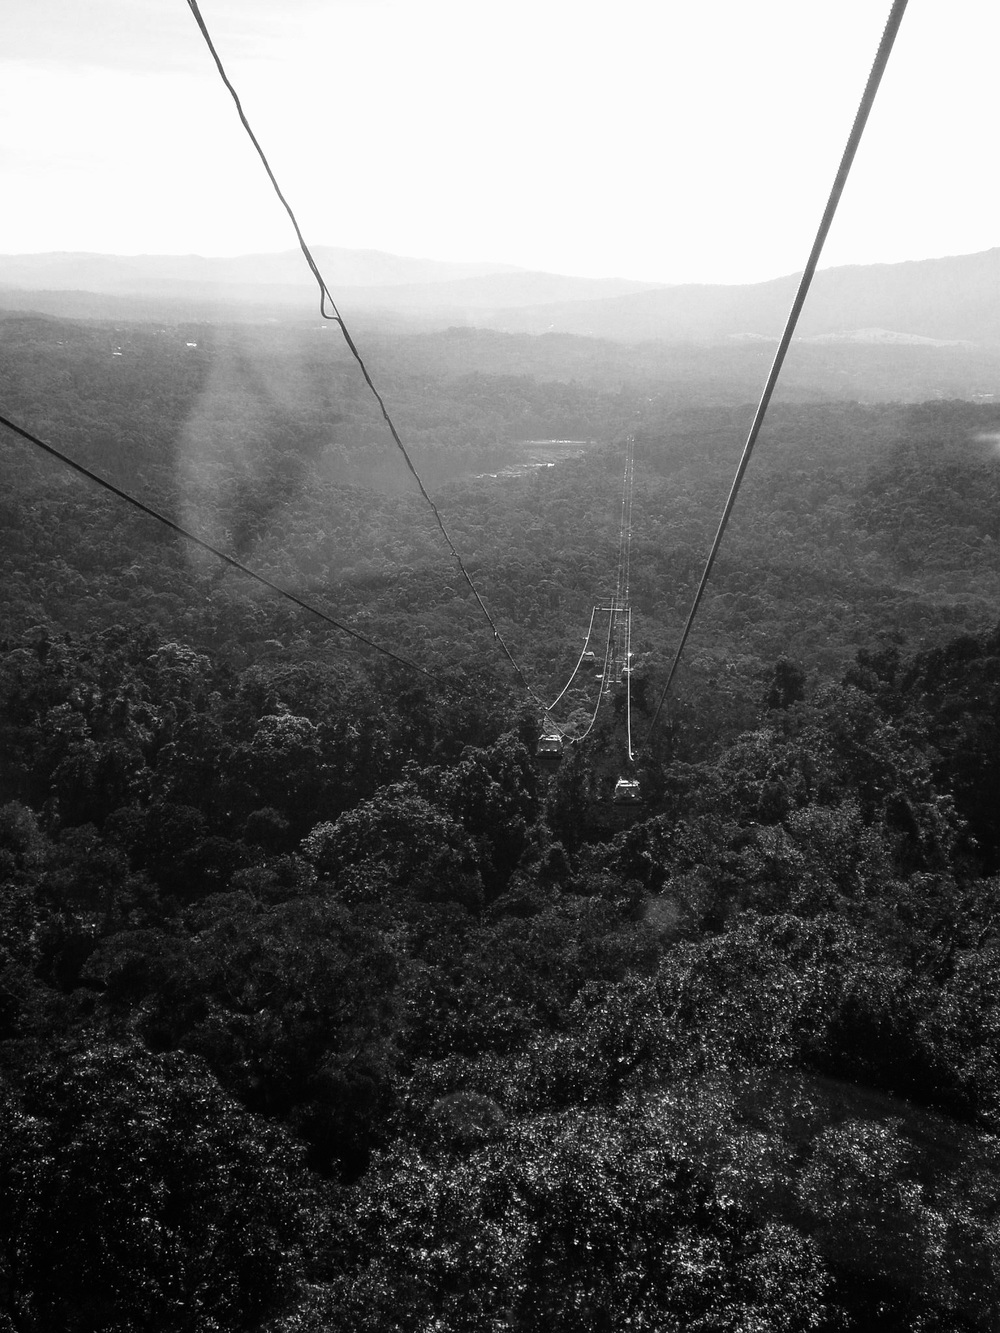 This photo was taken just as we left the cable car hub, after we had ridden the mountain side railway up to the top. The cable car ride was about an hour, high up above the trees, looking down into the Barron Gorge National Park. I remember tearing up and freaking out as the cable car left the station. I had never been in one before and I was/am afraid of heights (especially heights over a mysterious rainforest in Australia). I made it down alive, with no make-up, and some amazing sights to remember.   4/5 - 2008